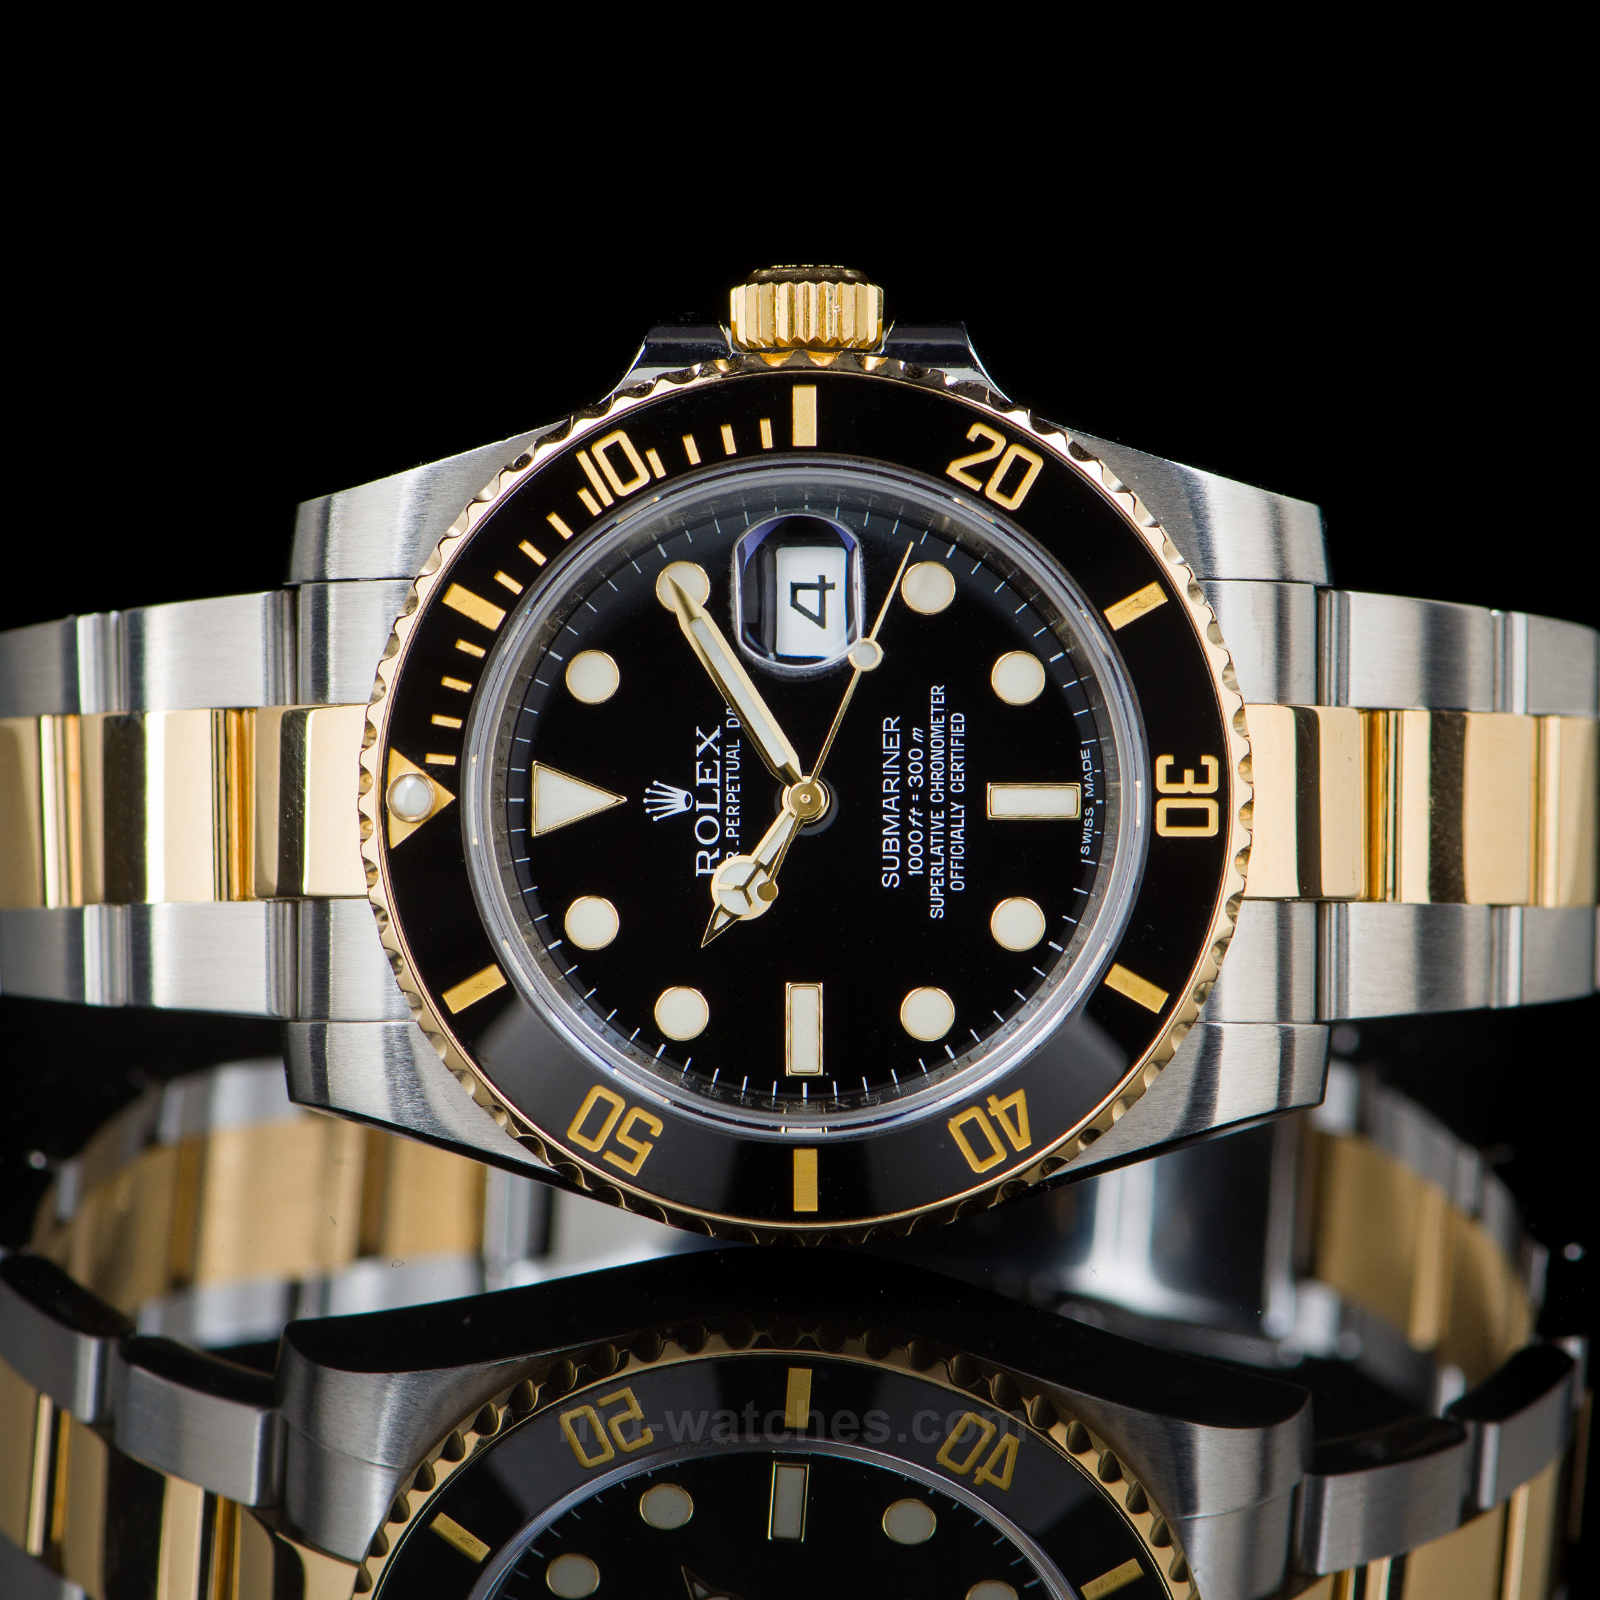 7242bacd0ac44 Rolex Submariner Date Ref: 116613LN Two-tone gold/steel - 40mm - MD ...